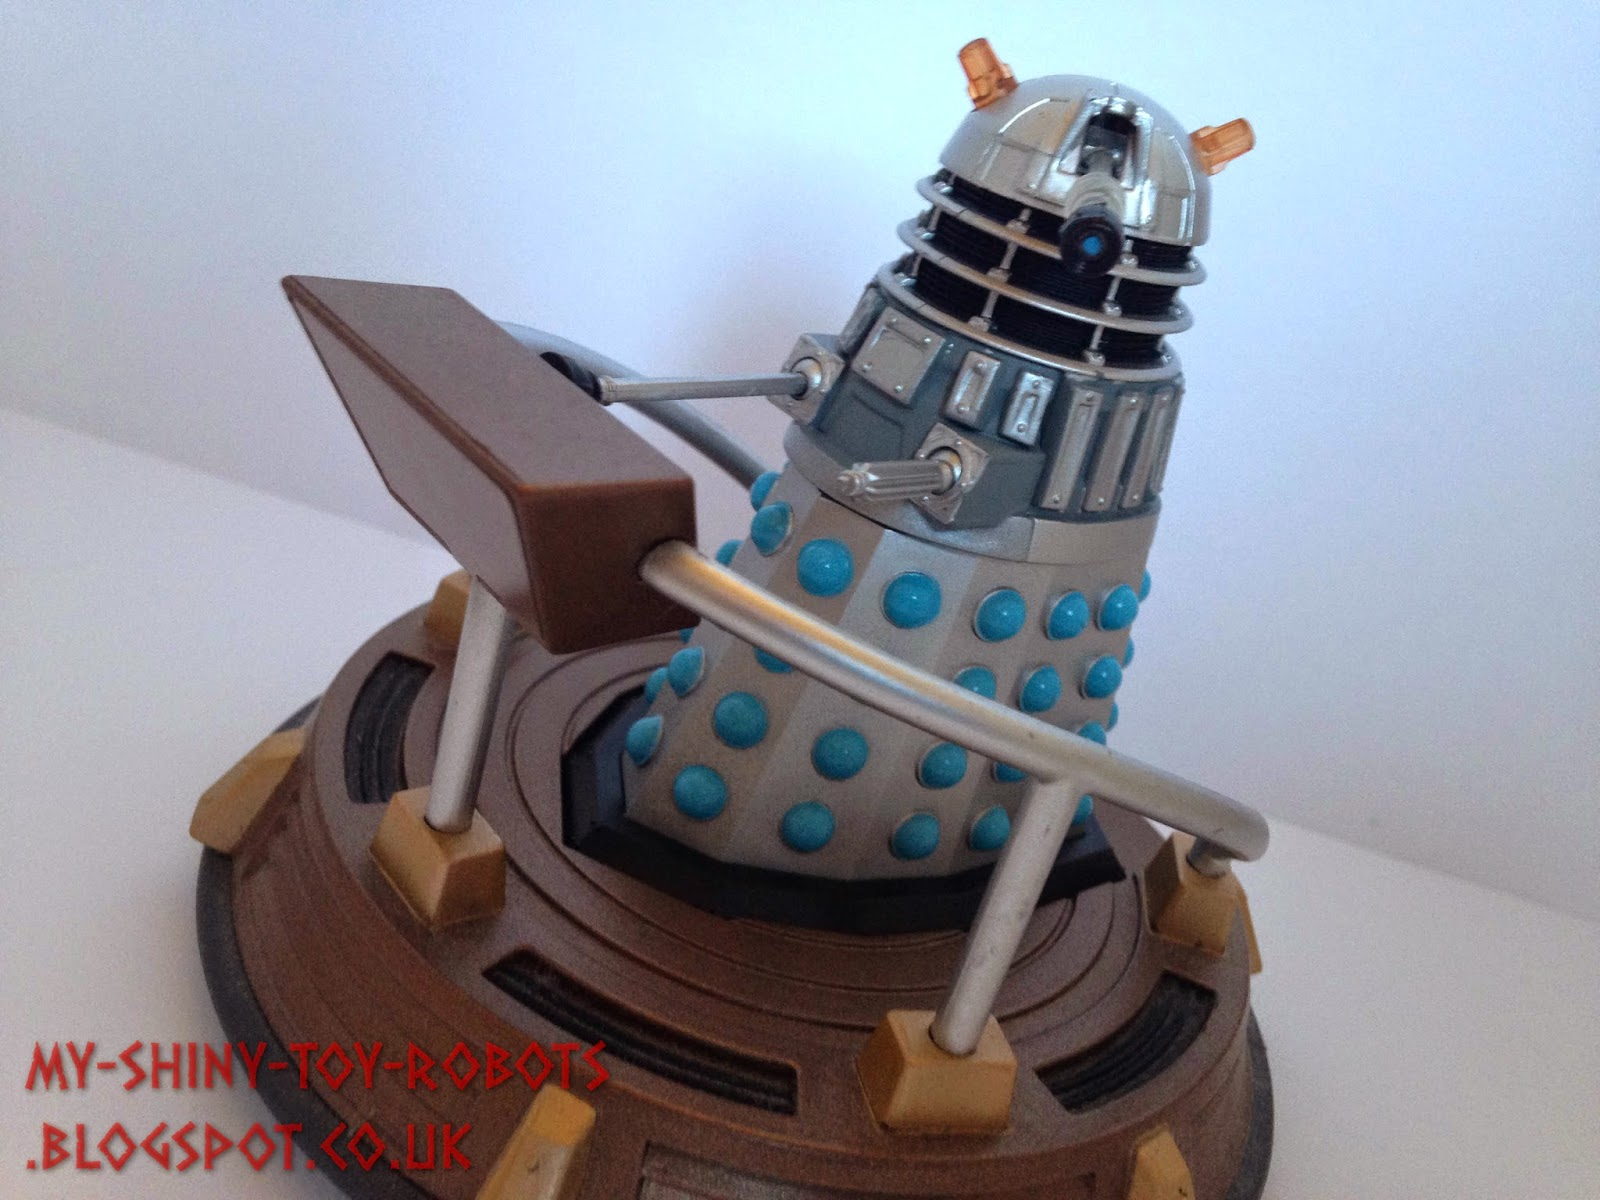 Dalek takes to the transolar disc